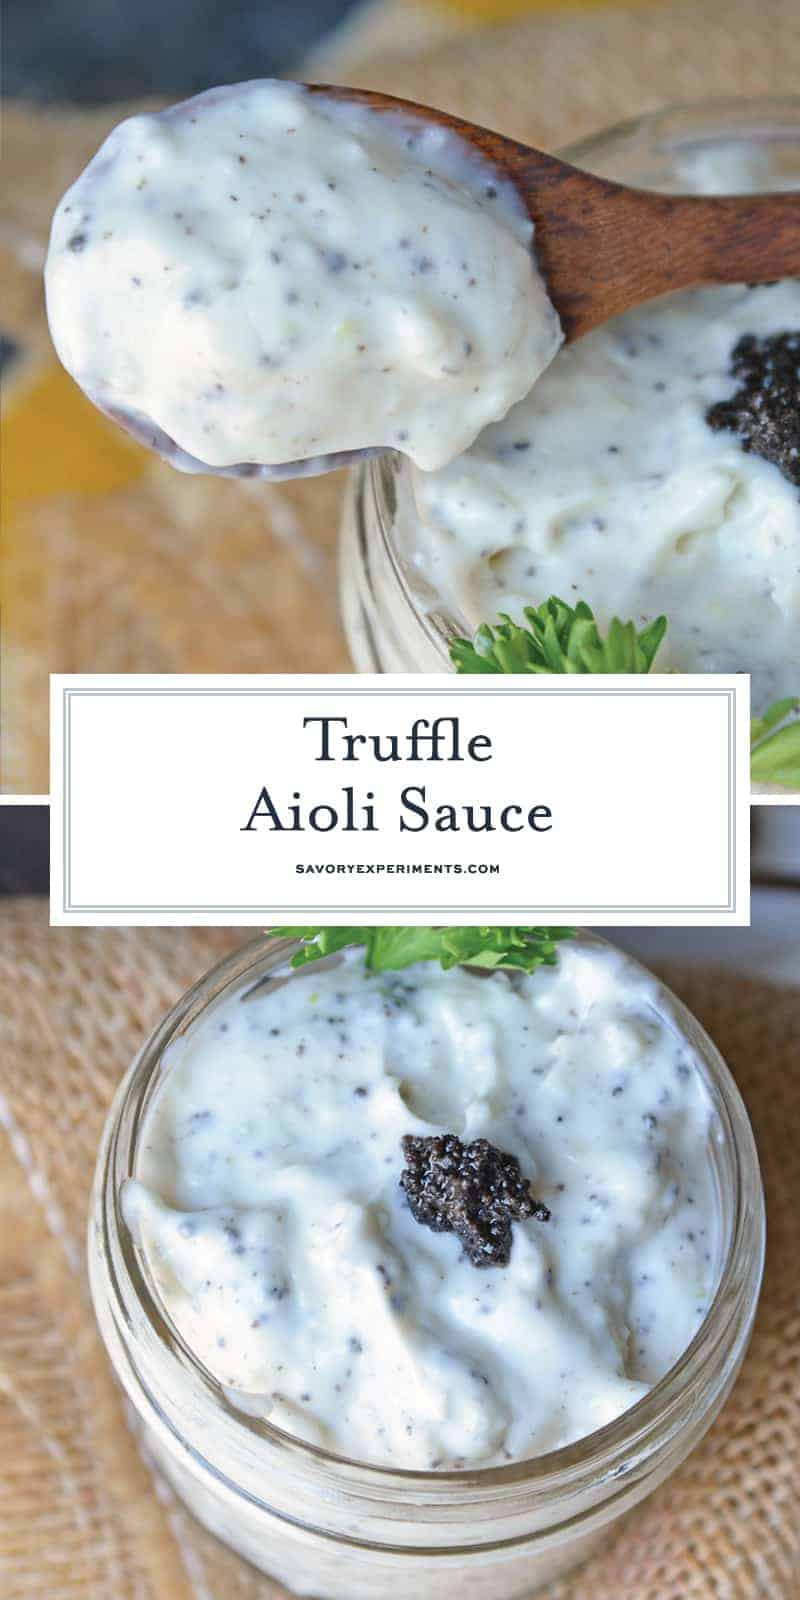 Truffle Aioli Sauce, made with black truffle pate, is a delicious, easy-to-make condiment you'll want to add to everything. As addicting as it is delicious! #blacktruffle #whatisatruffle #aiolisauce www.savoryexperiments.com